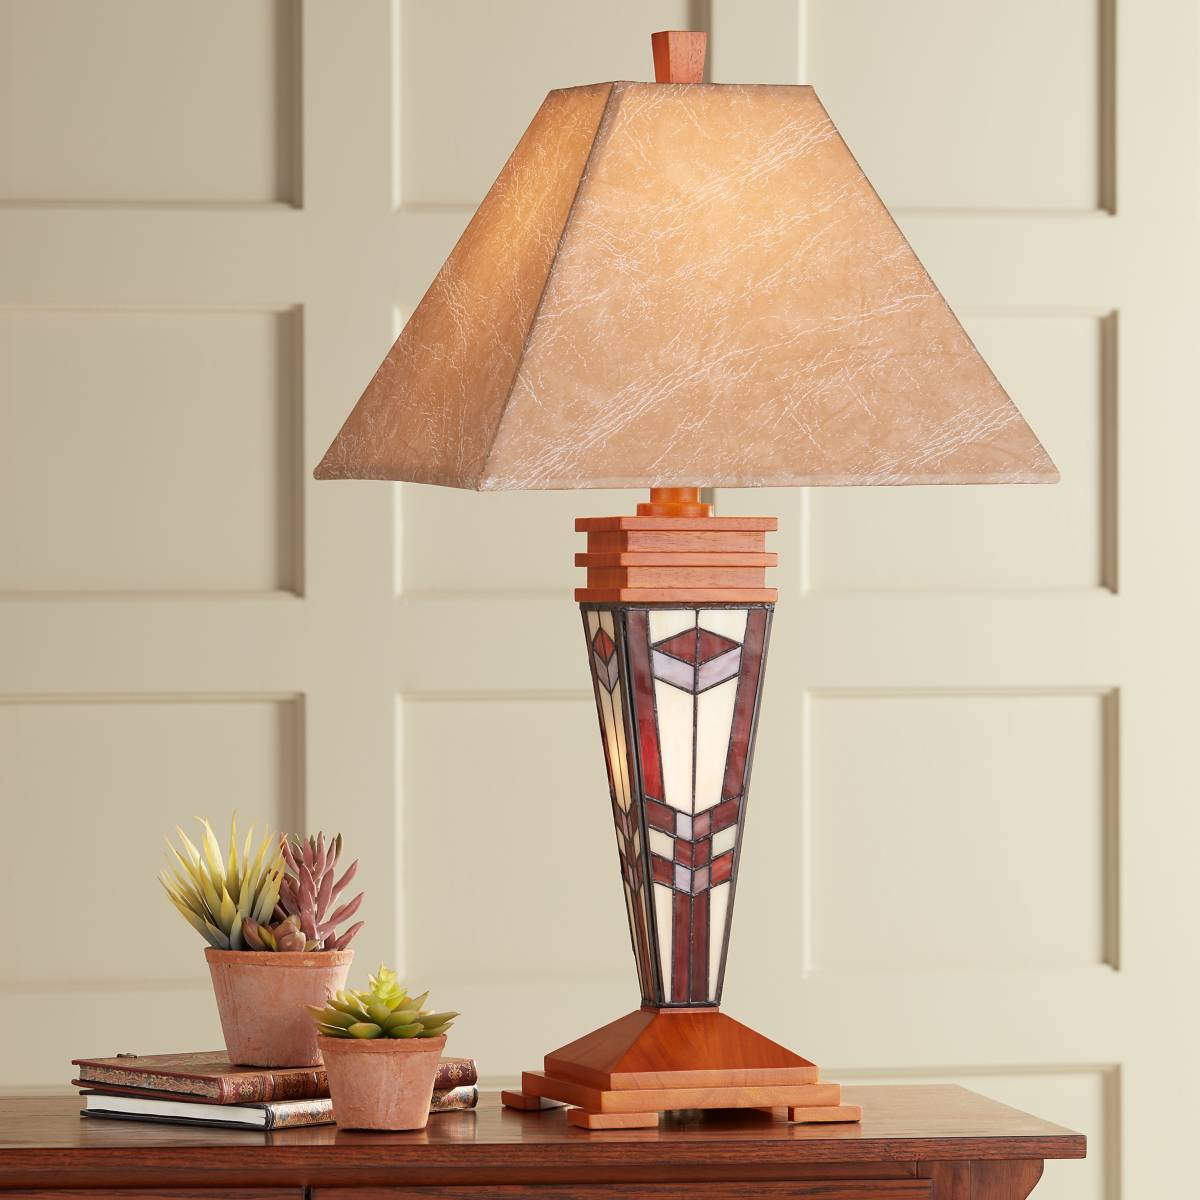 Lamp Plus Stores: Wood, Rustic - Lodge, Table Lamps